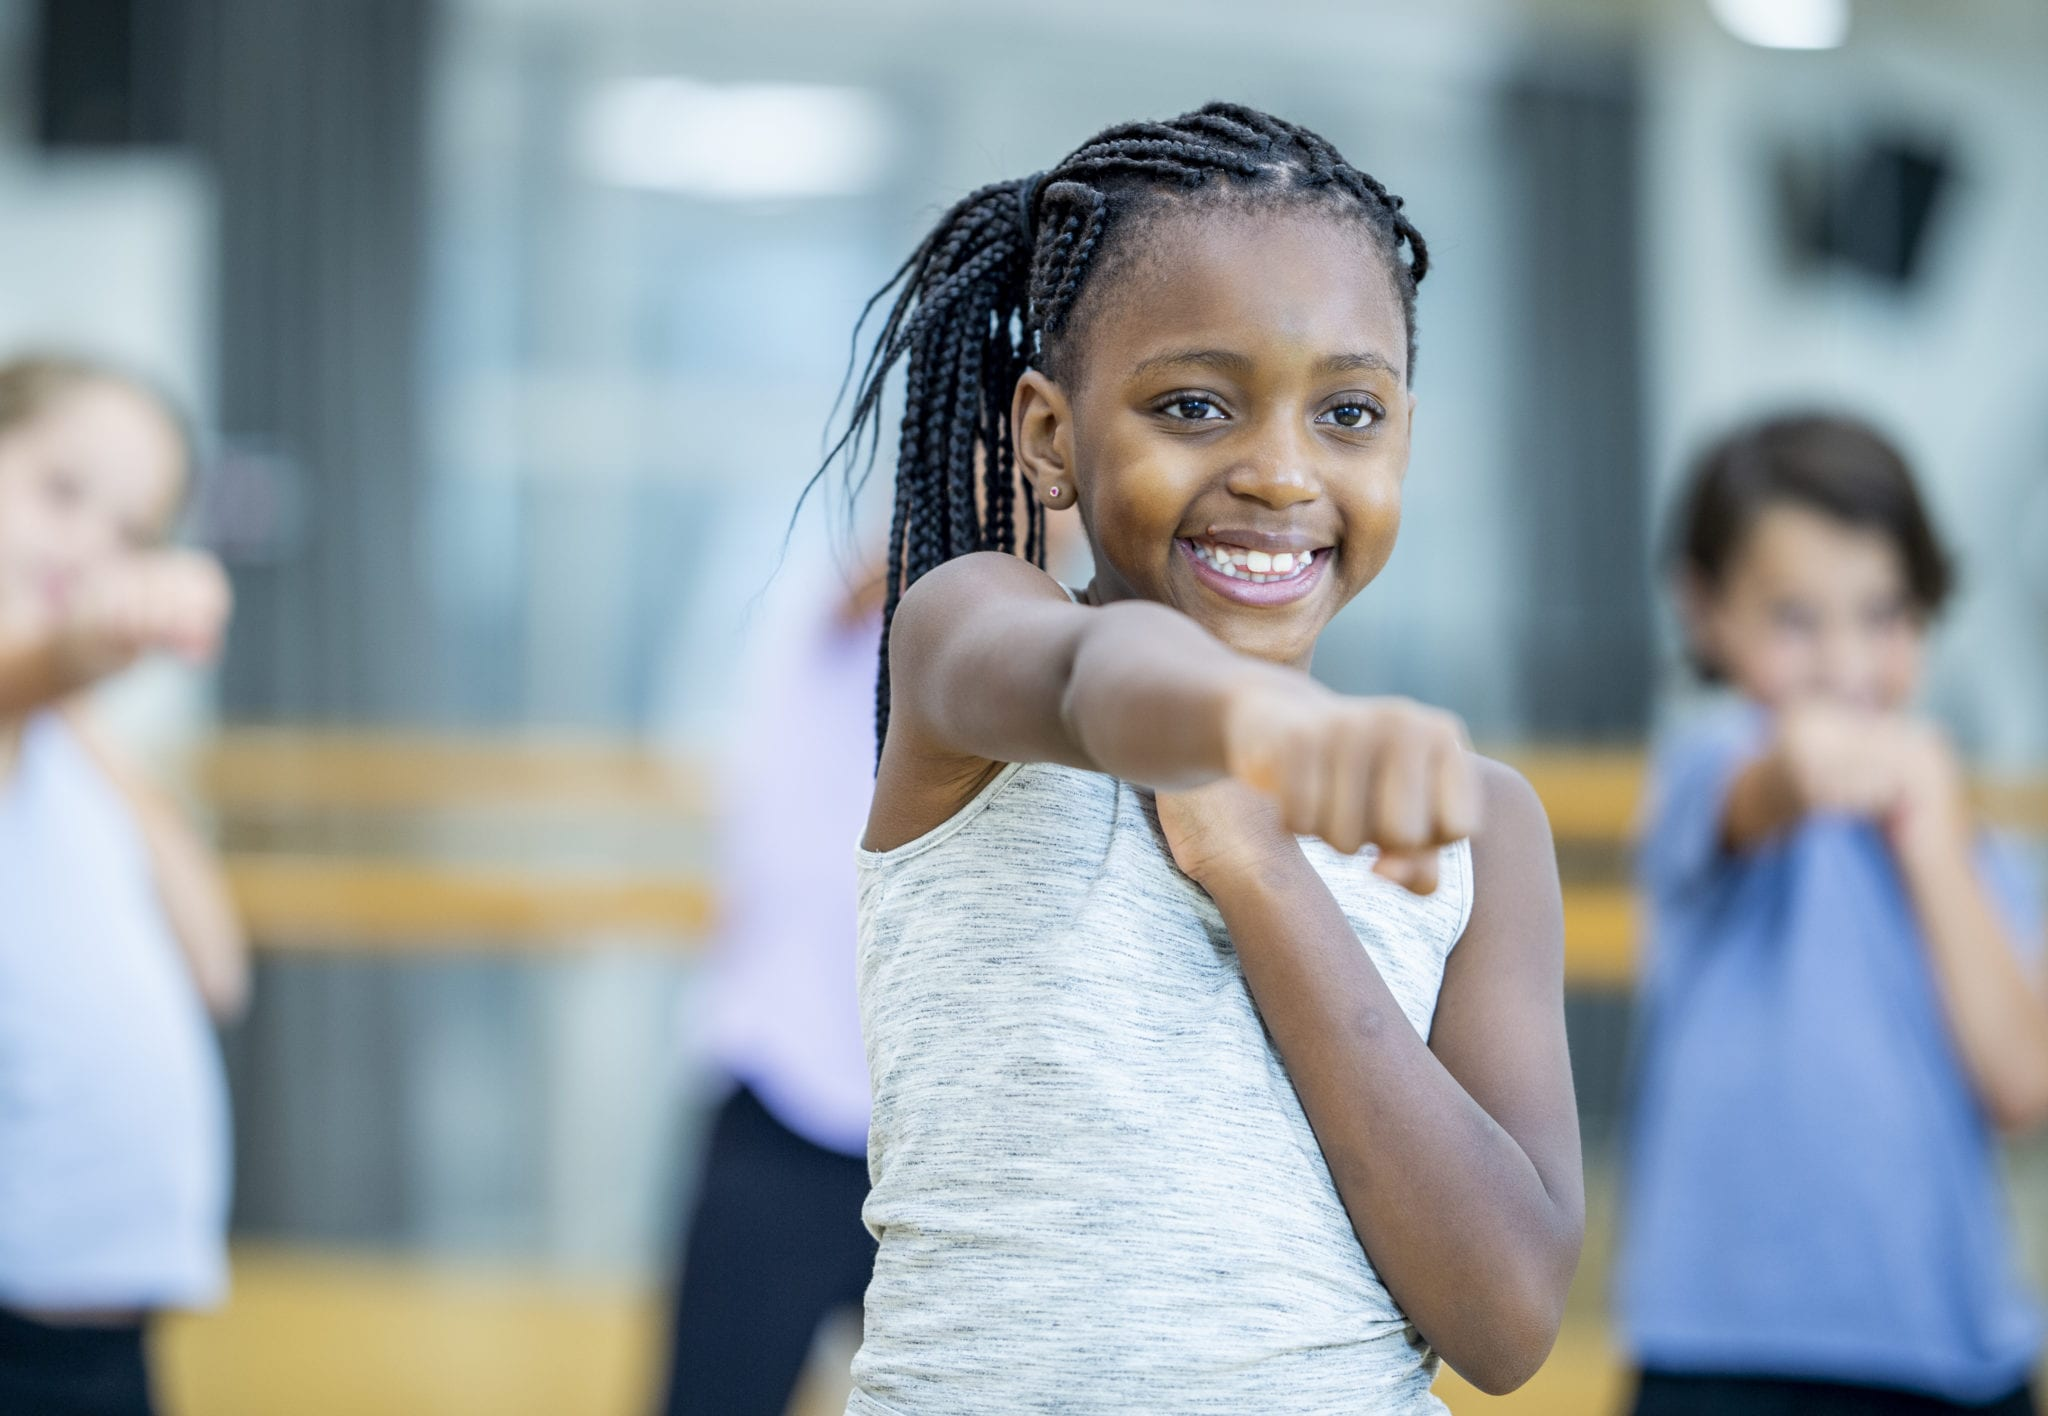 african american girl working out in group youth fitness class at brick bodies gym